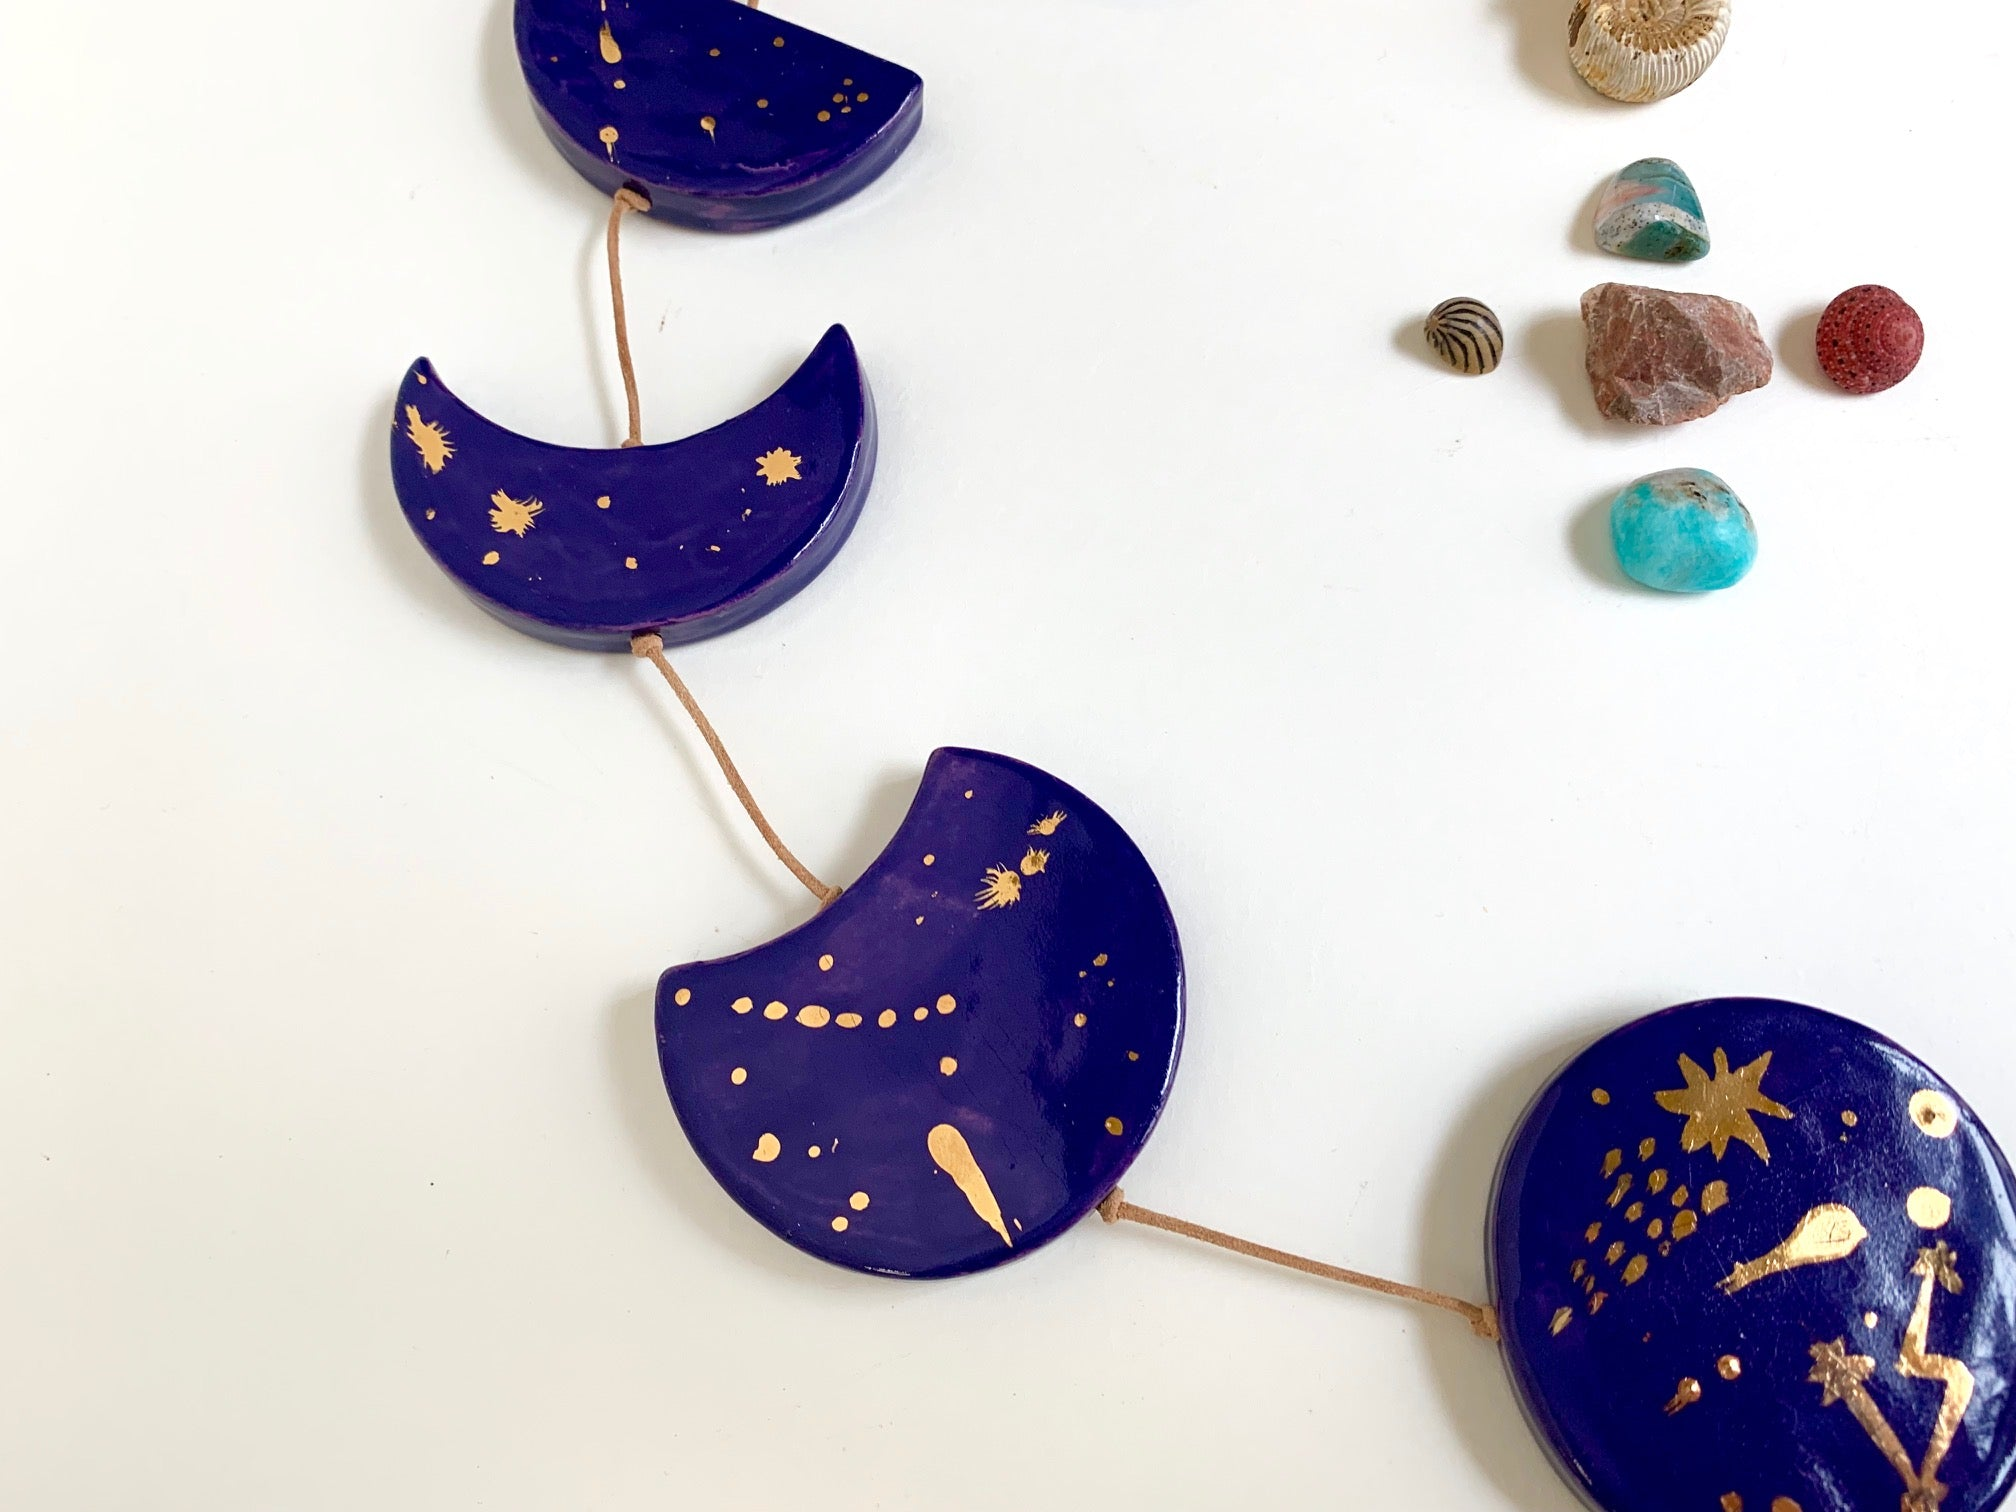 starry night, cobalt & gold horizontal moon phases wall hanging